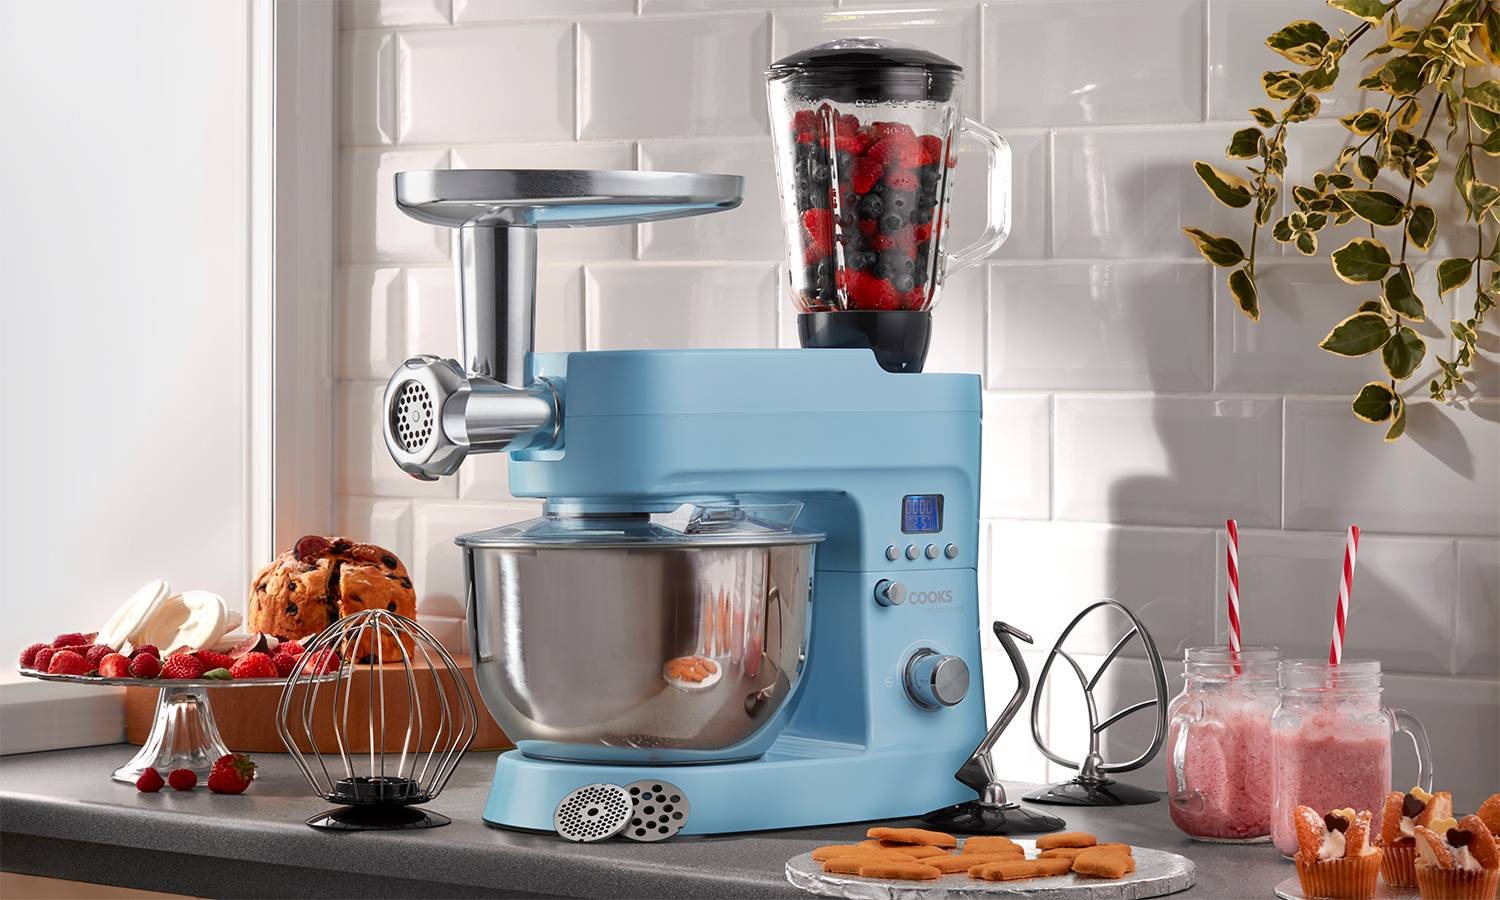 134.99 Cooks Professional 1200W Stand Mixer: Retro Blue/With Accessories